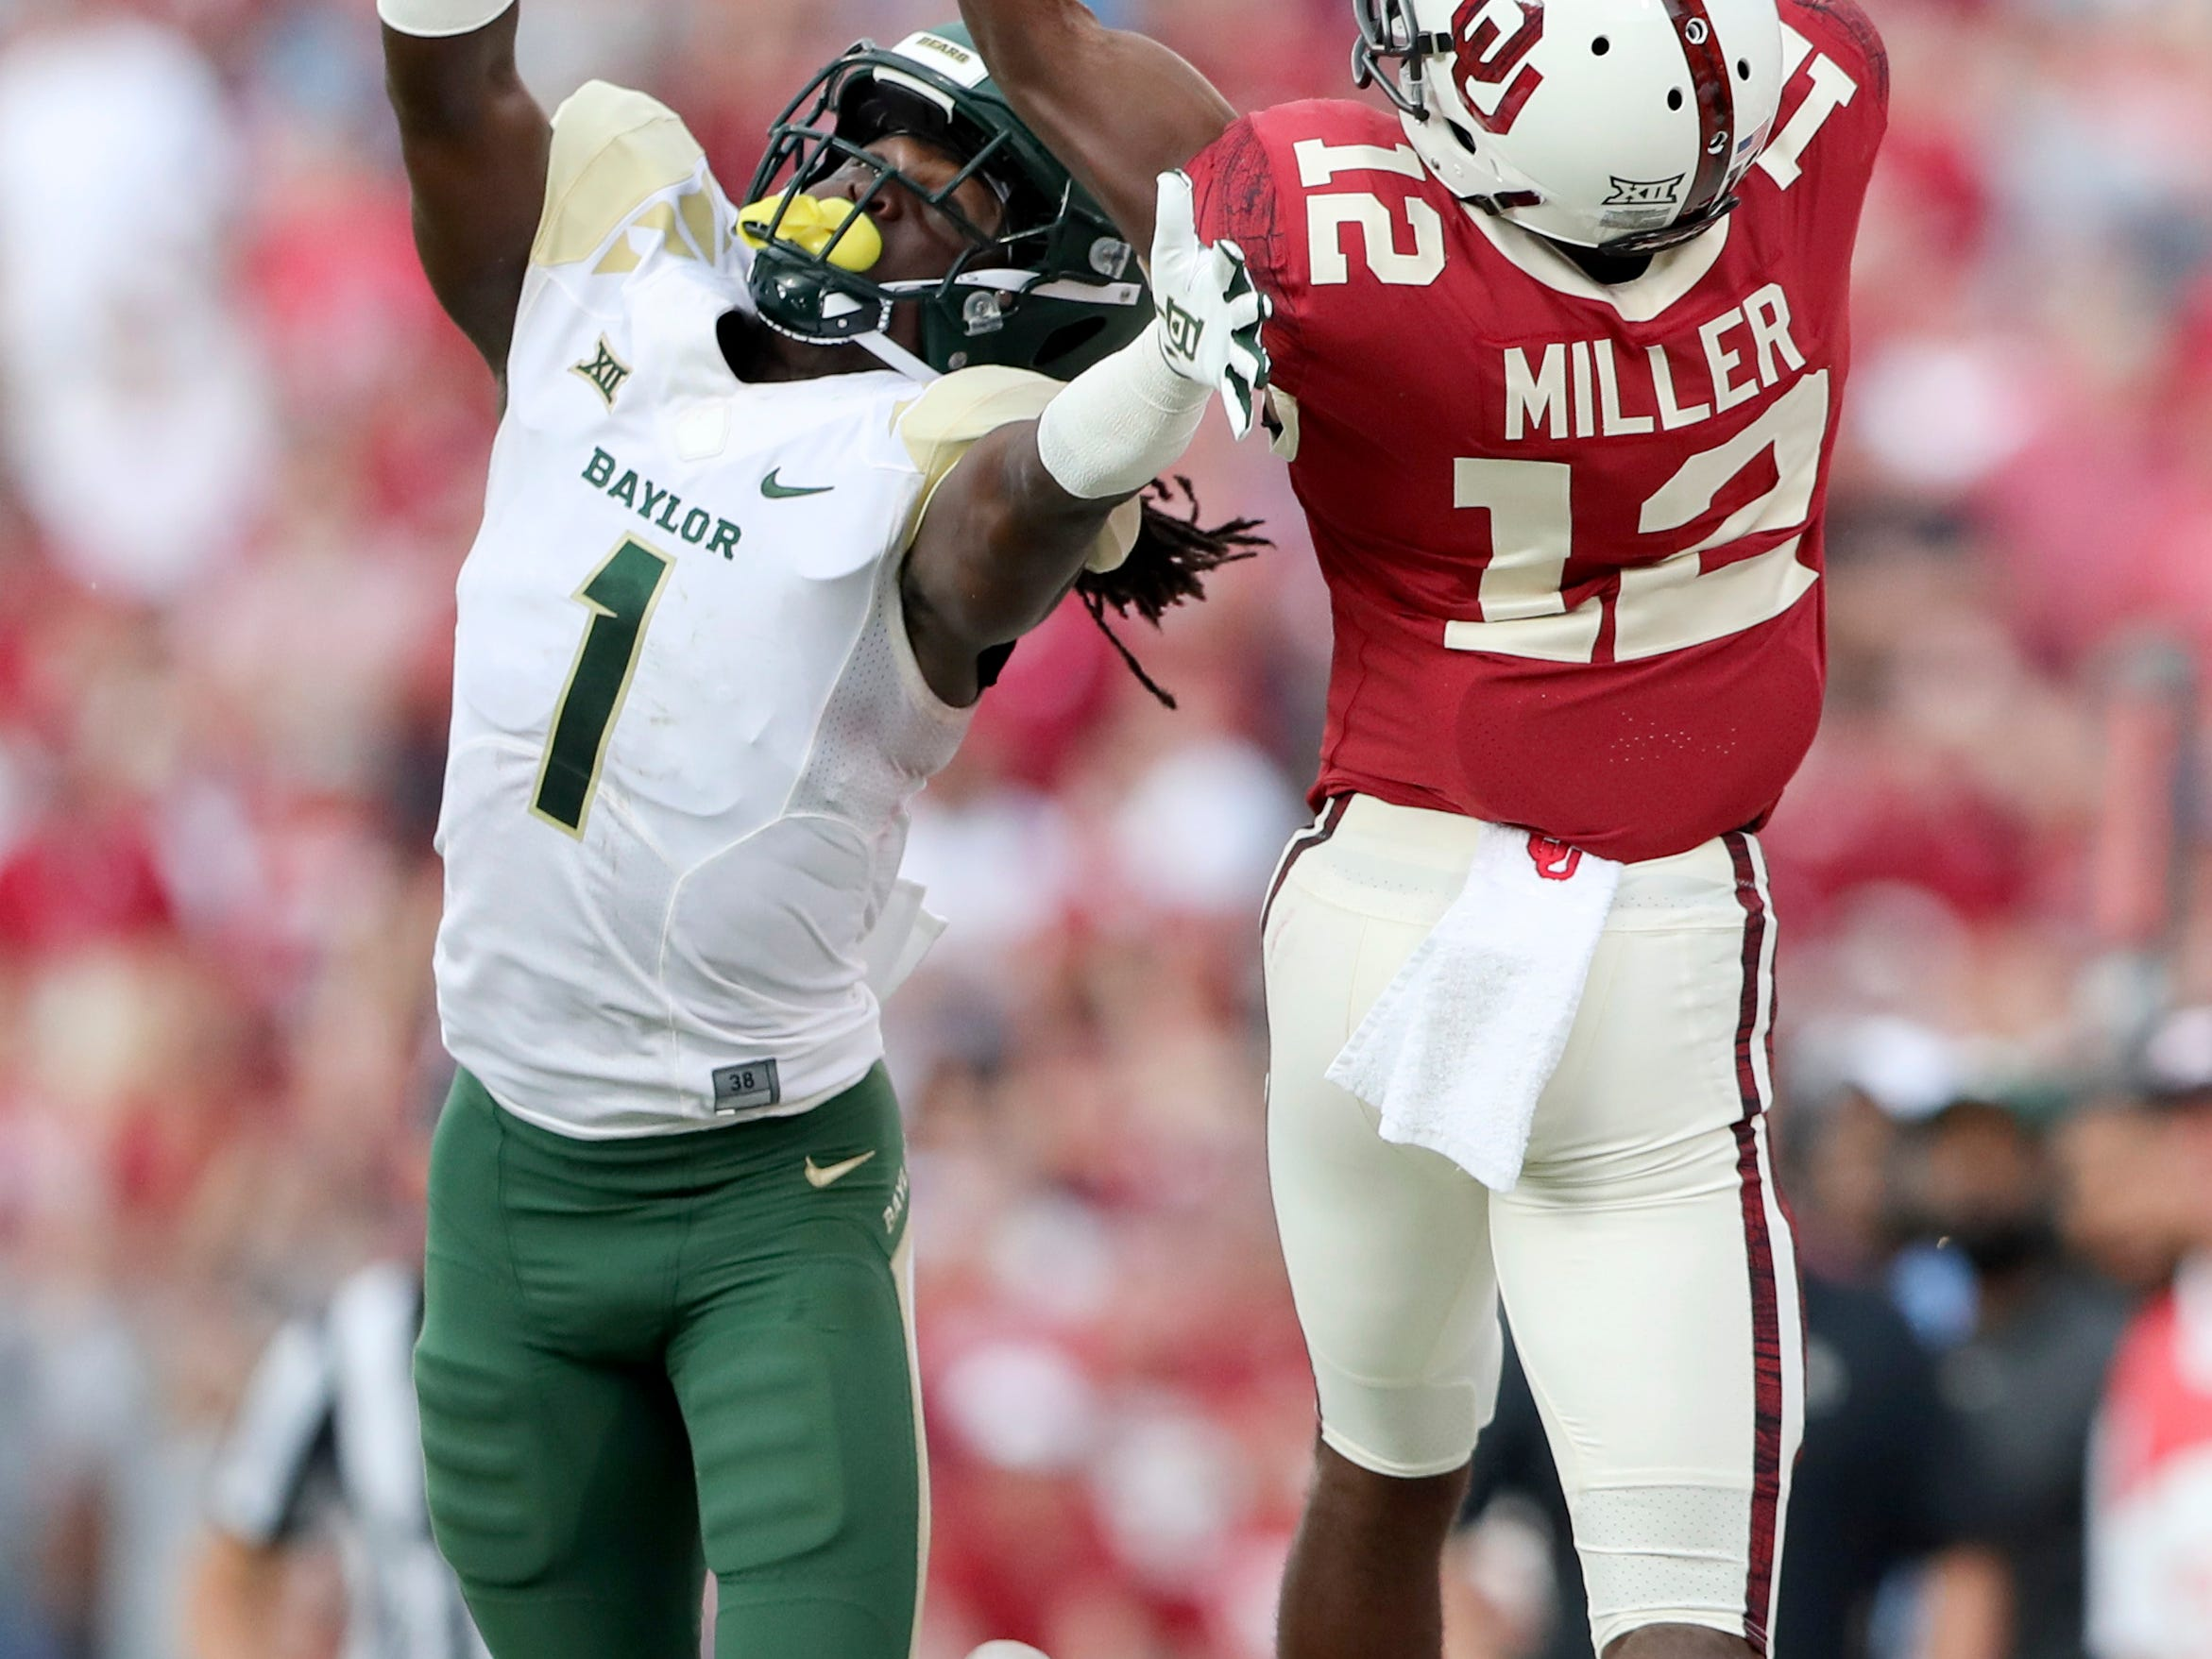 Oklahoma Sooners wide receiver A.D. Miller (12) attempts to catch a pass as Baylor Bears safety Verkedric Vaughns (1) defends during the second half  at Gaylord Family-Oklahoma Memorial Stadium.